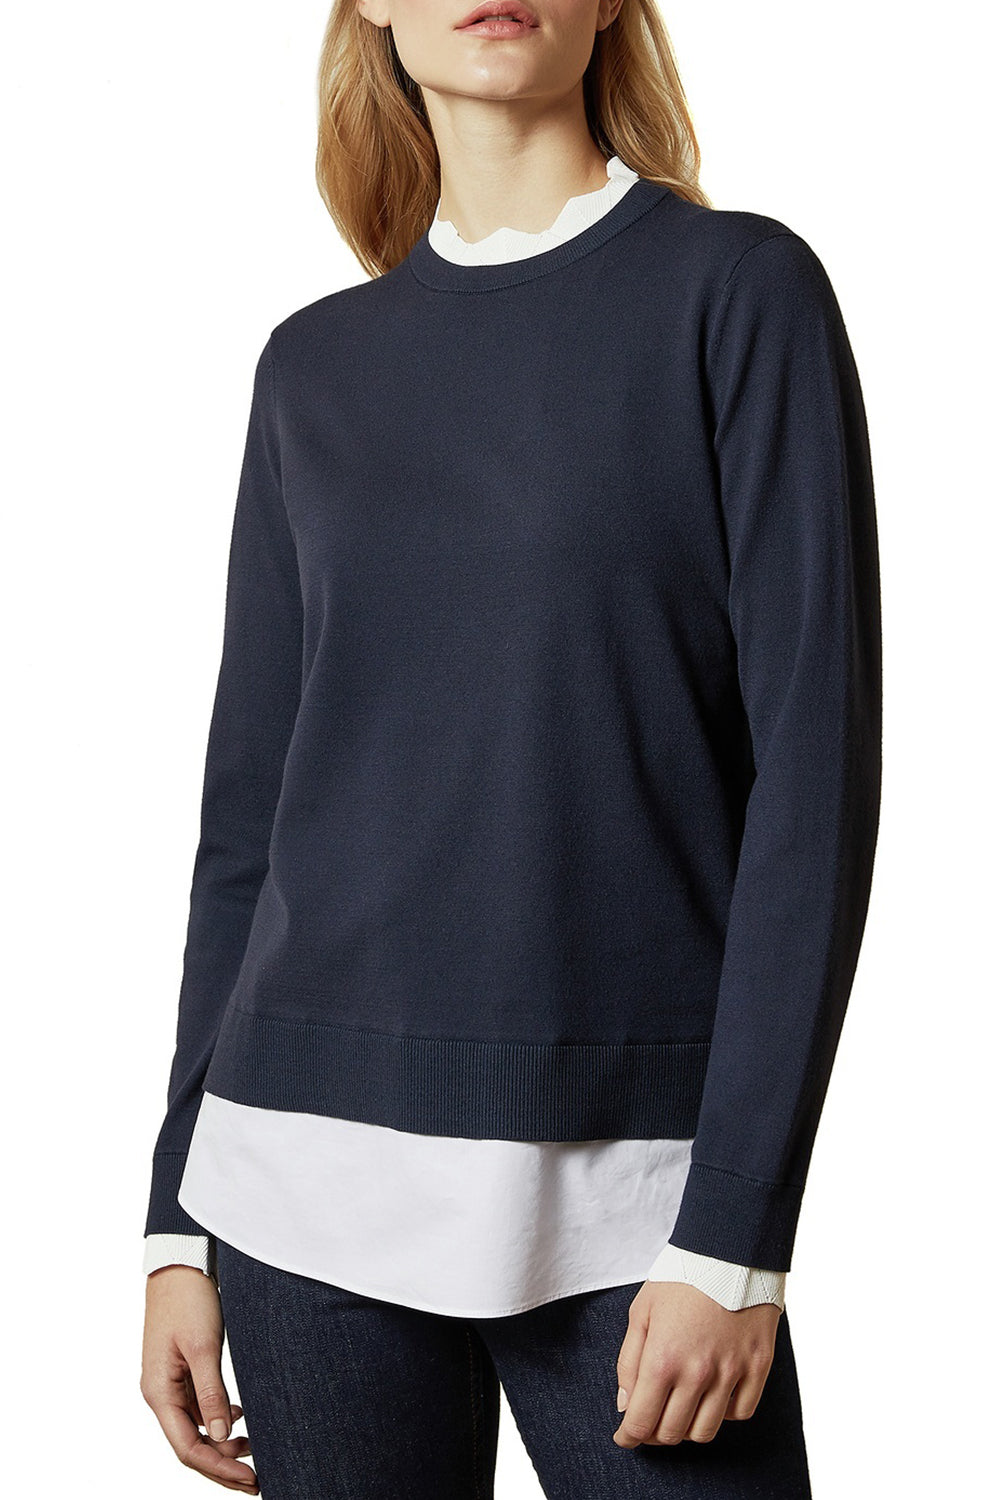 Ted Baker / Lleana Scallop Neck Detail Jumper / Navy